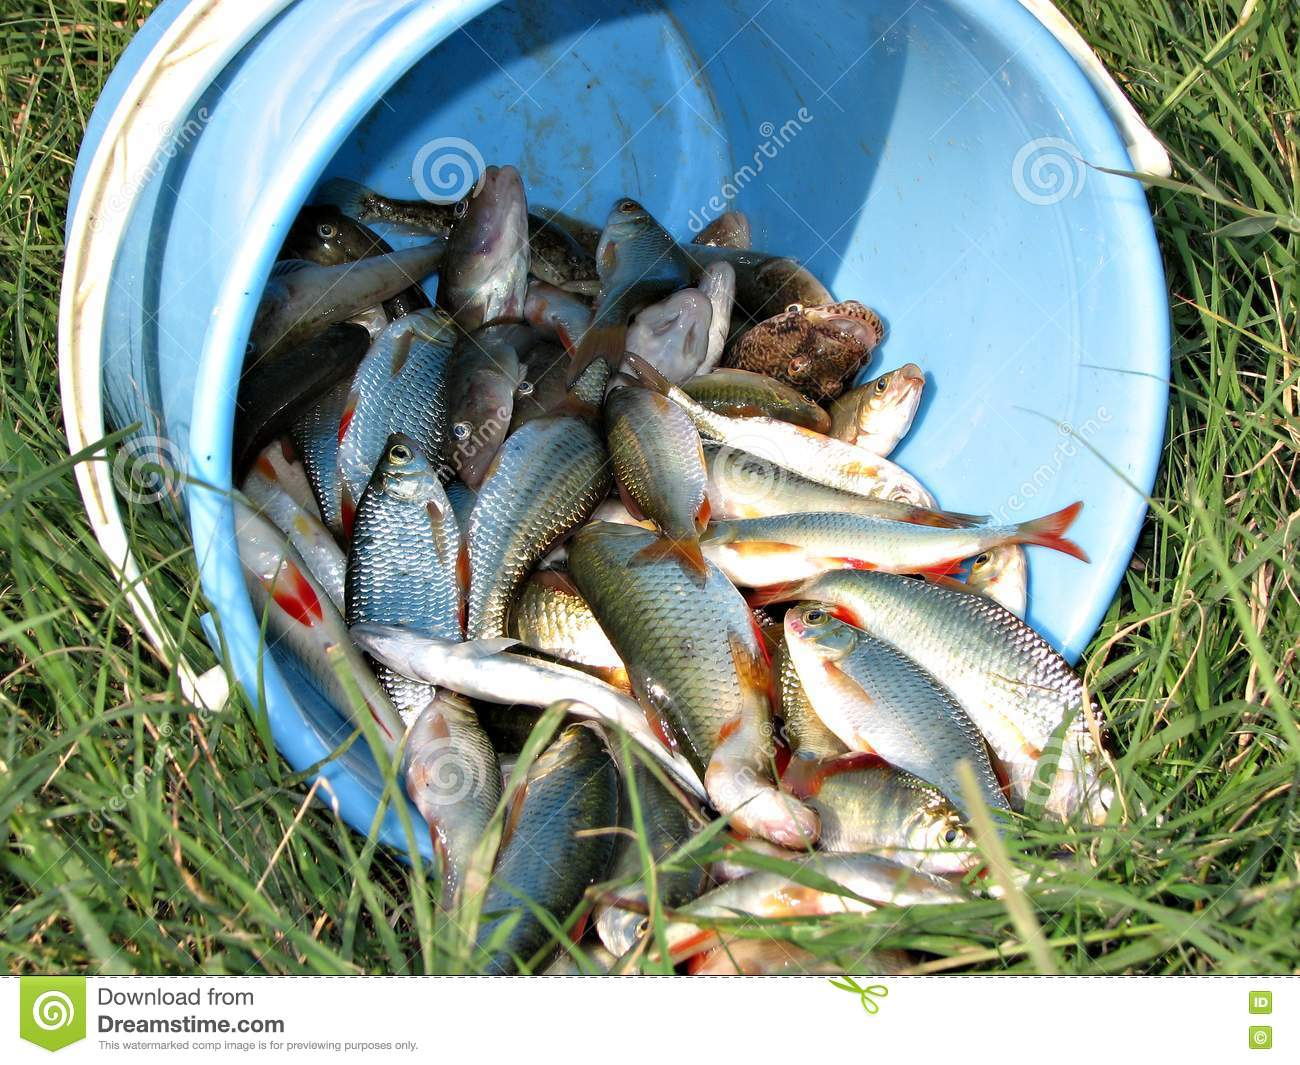 A bucket of fish royalty free stock photos image 10088178 for Bucket of fish